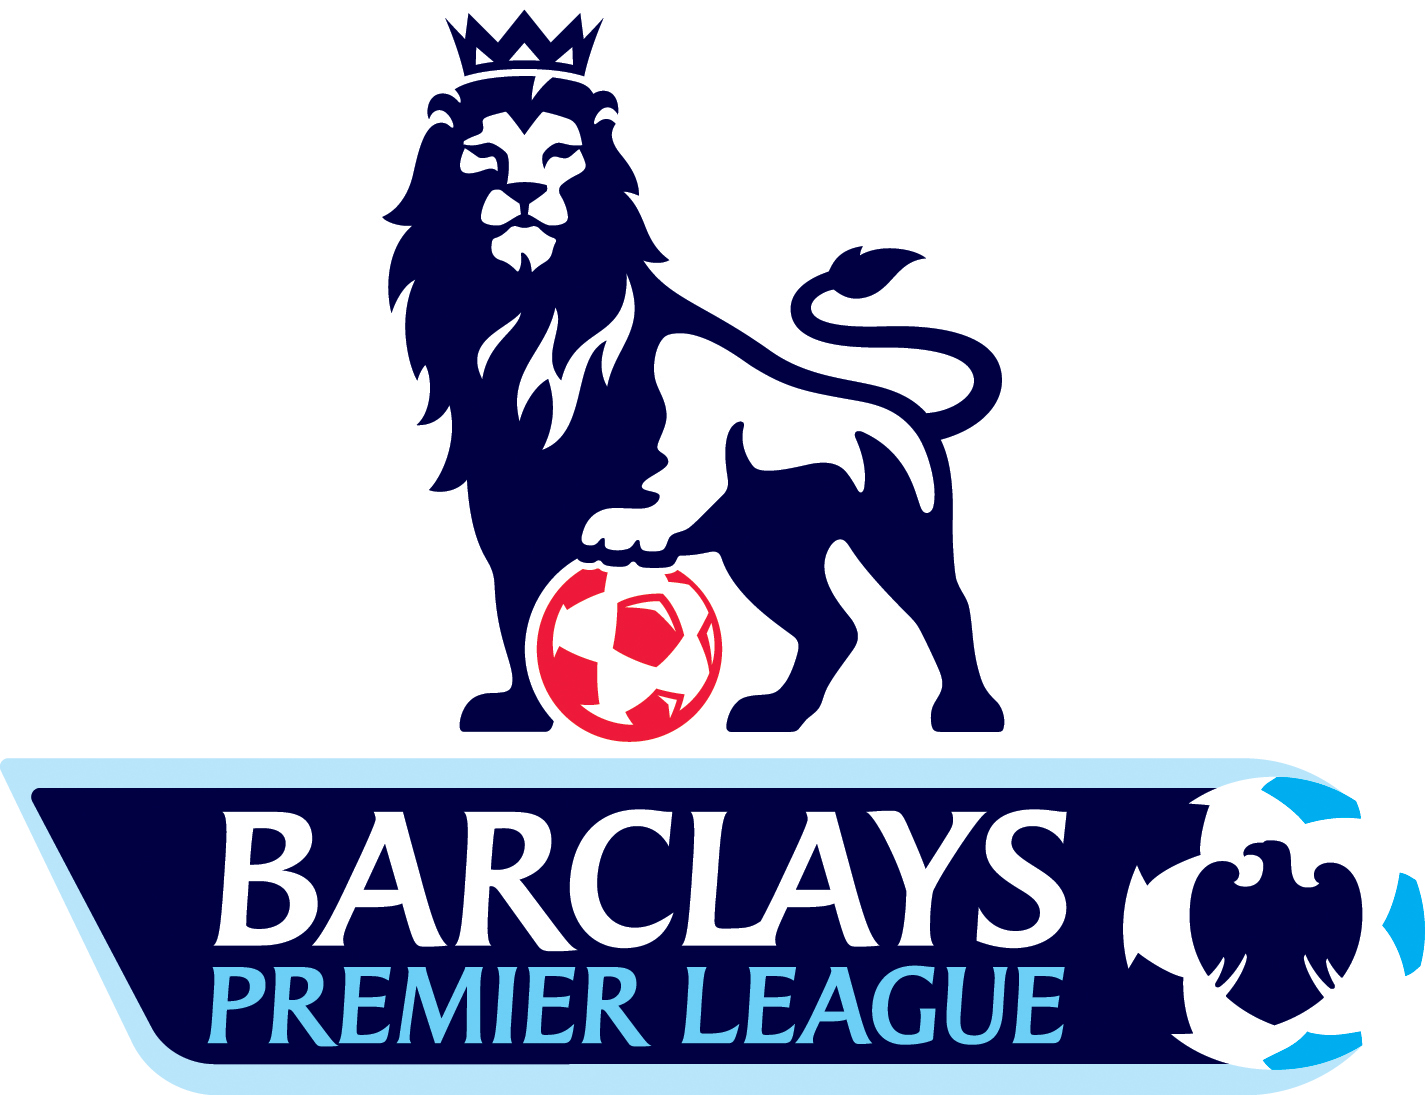 Barclays premier league review information nigeria - English conference national league table ...